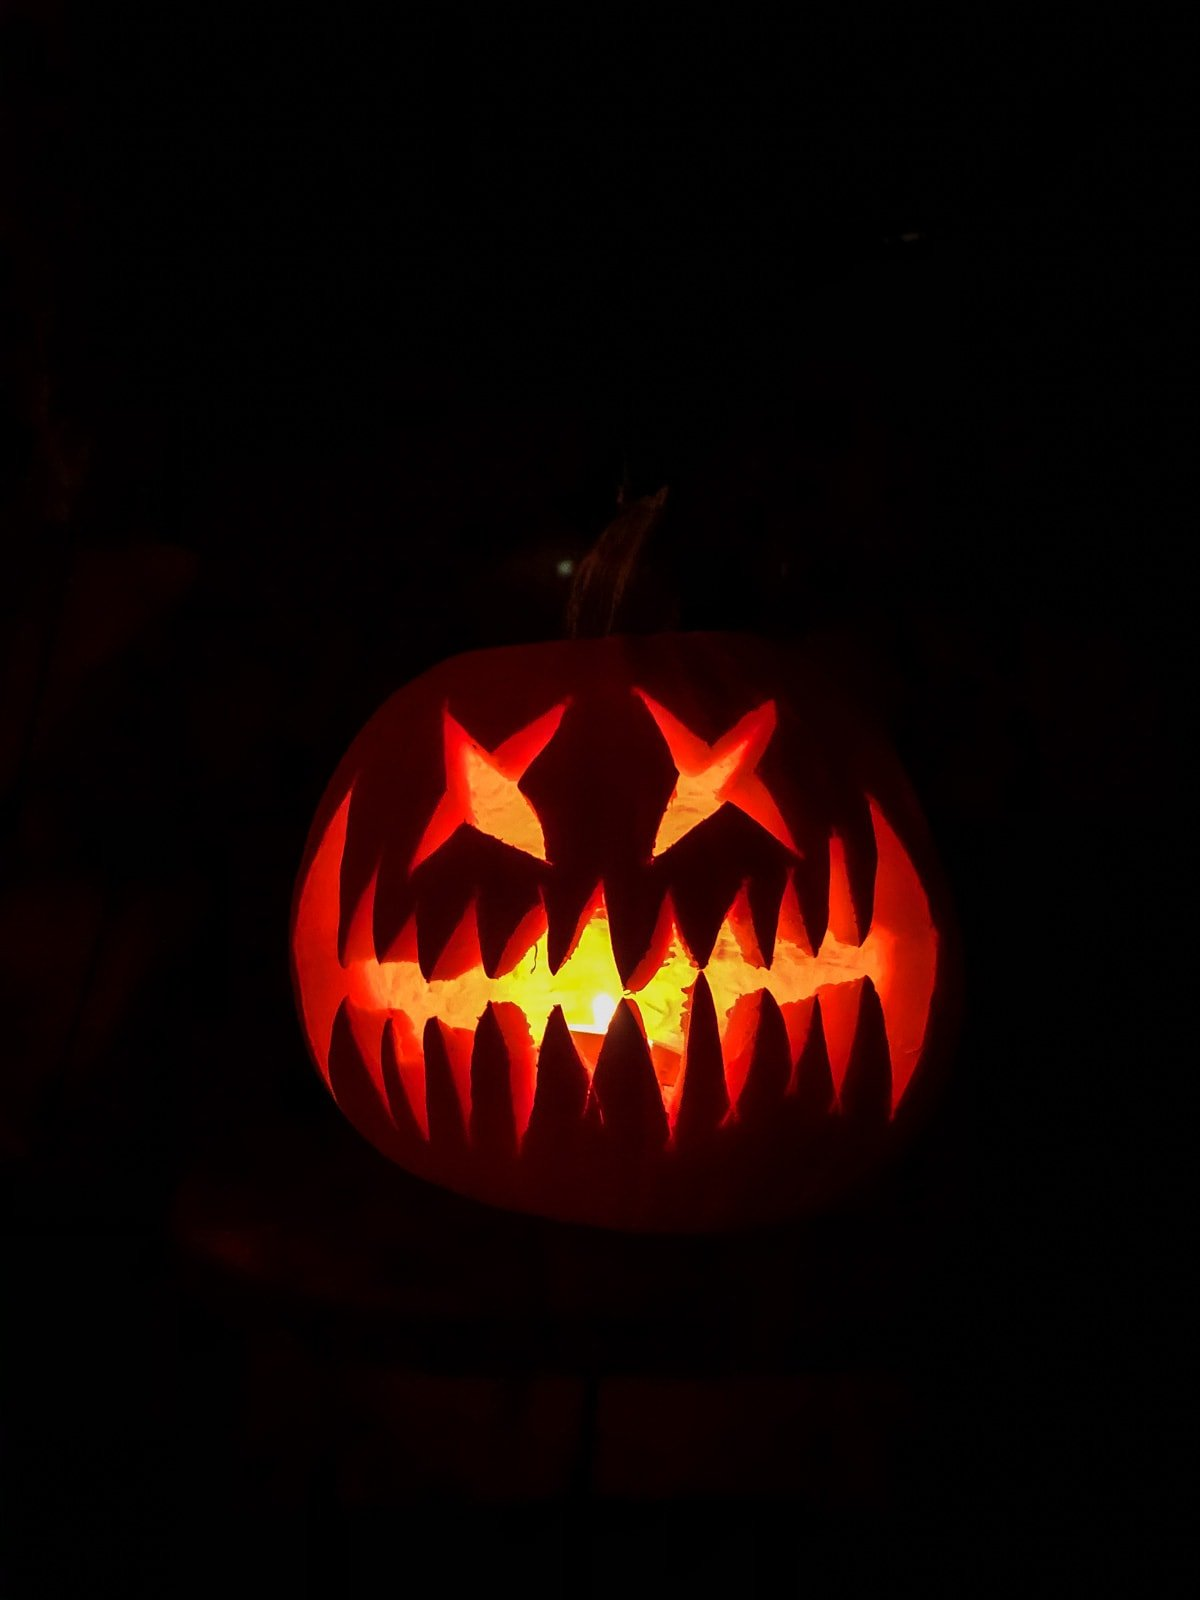 a large orange pumpkin is carved with a wide jagged smile and X eyes. it is lit up orange in a dark black night